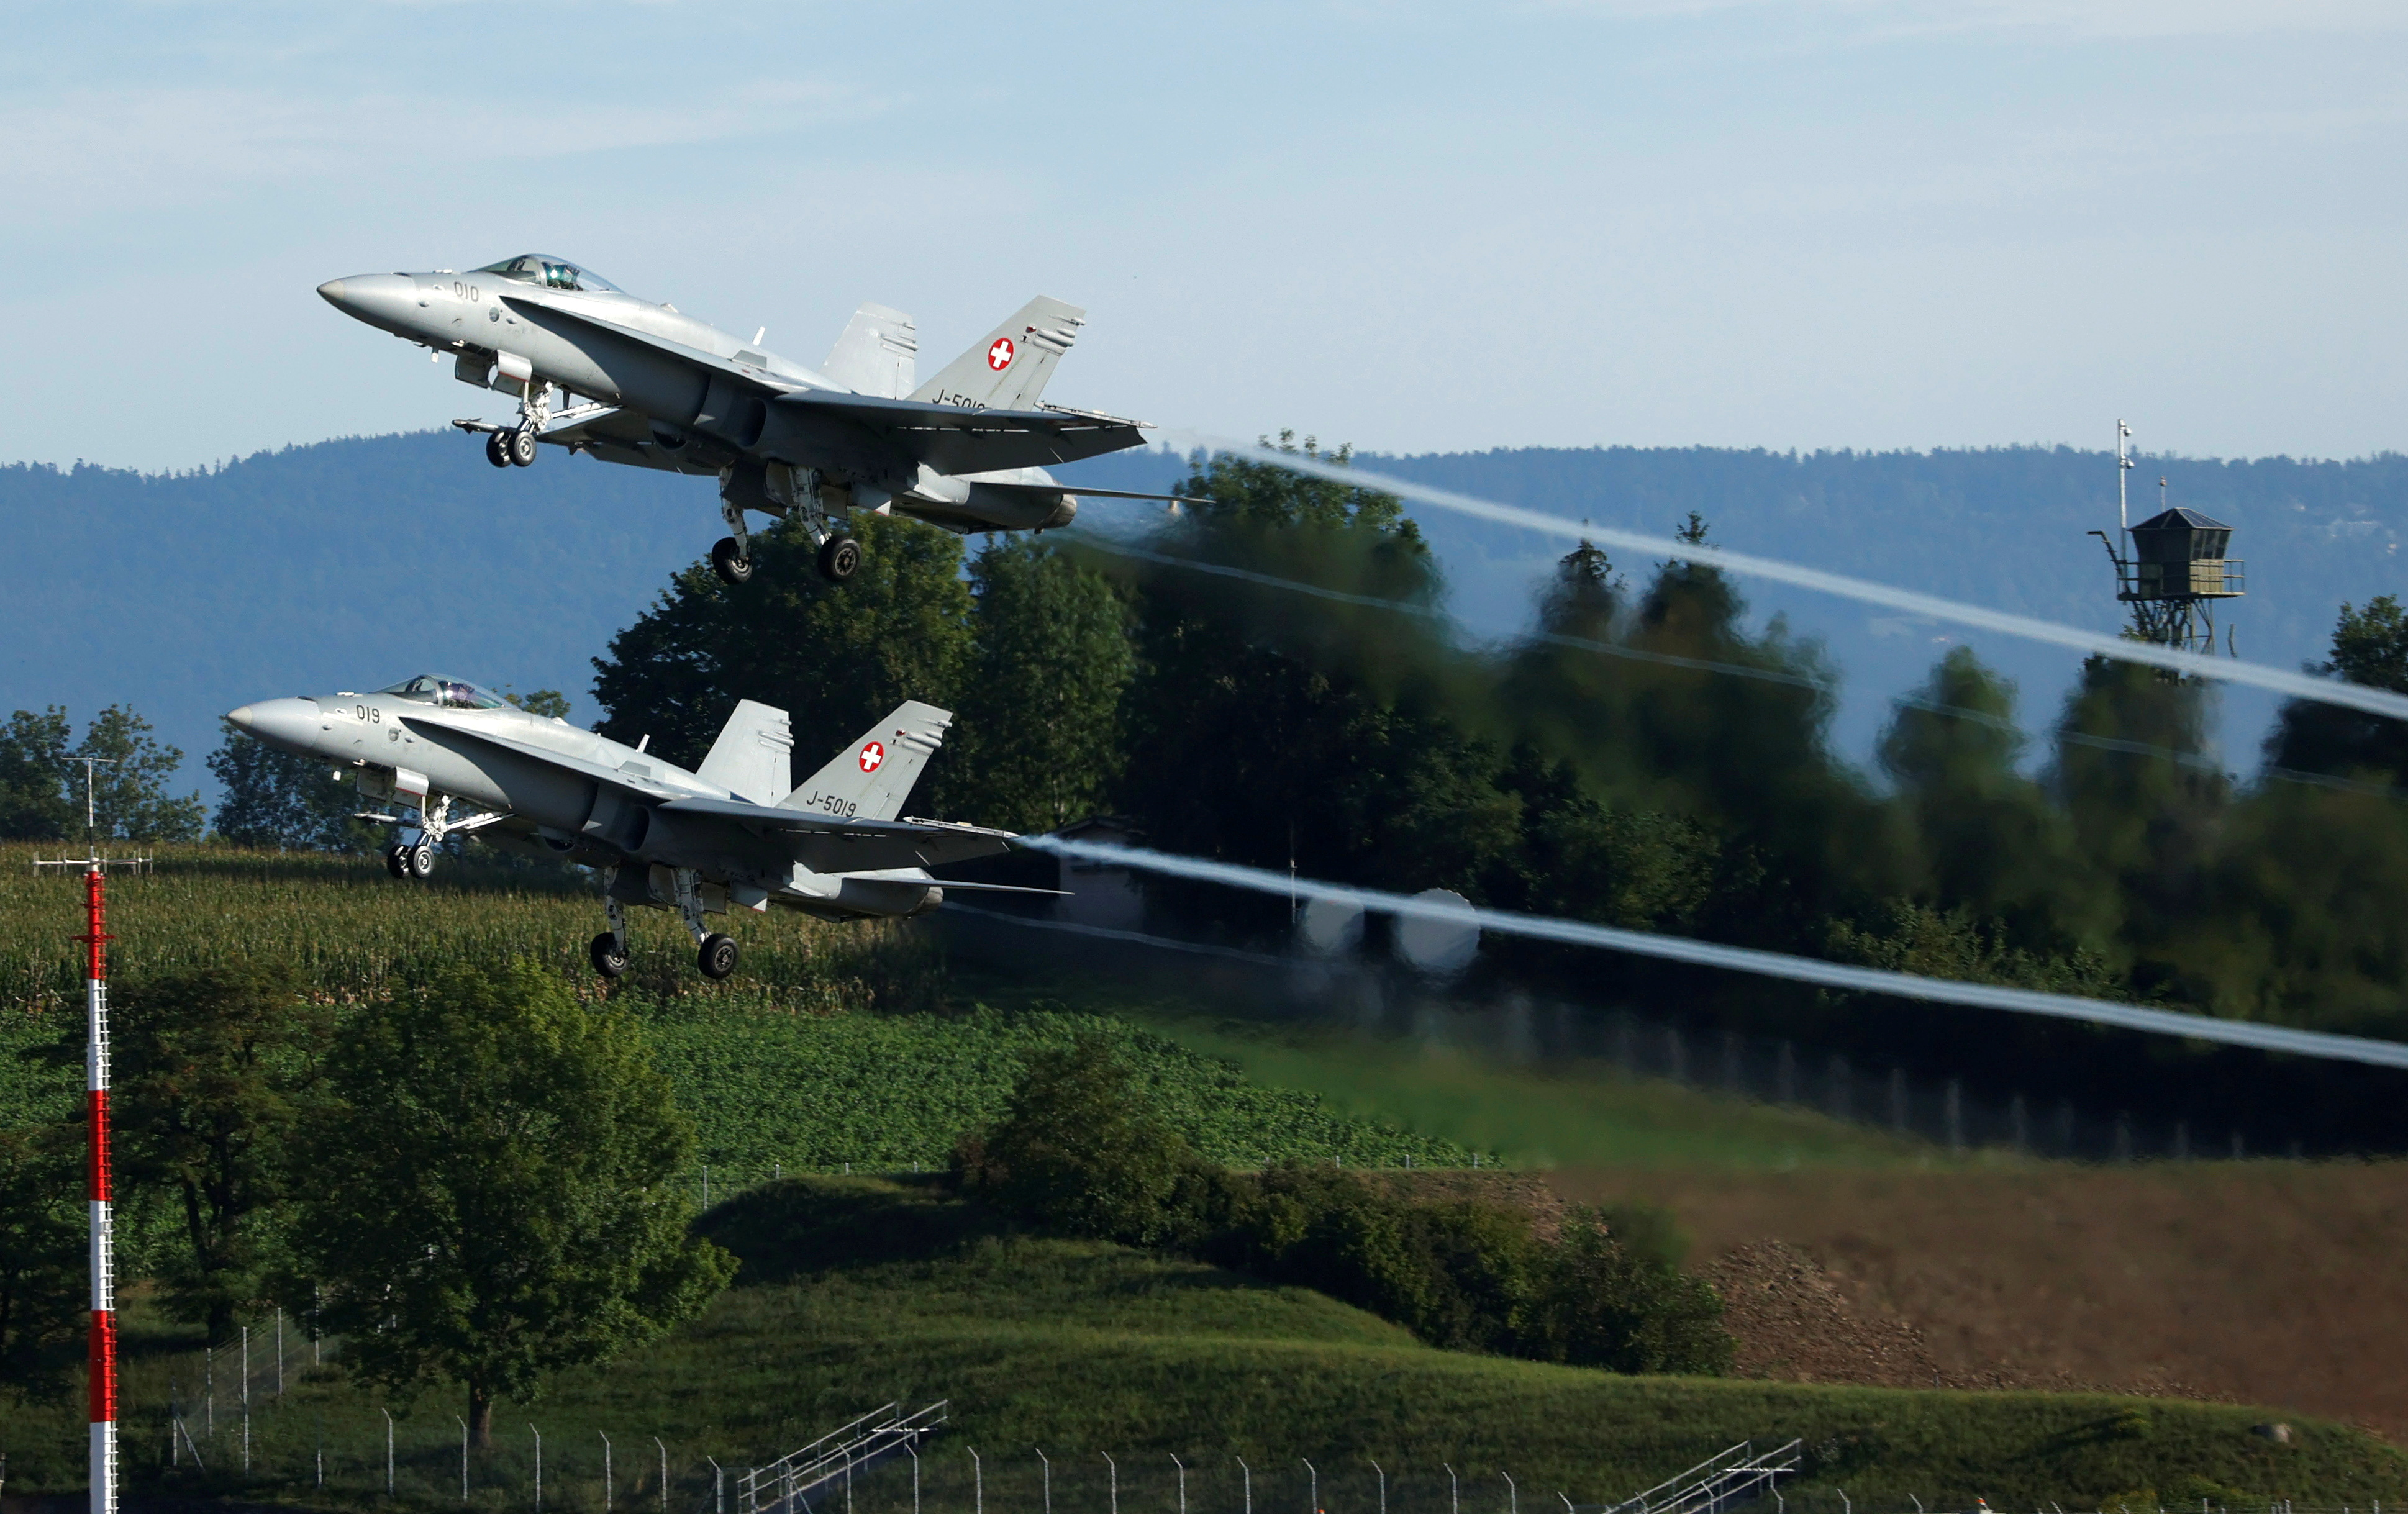 Two F/A-18 Hornet fighter jets of the Swiss Air Force take off at the Swiss Army base in Payerne, Switzerland, August 25, 2020. REUTERS/Denis Balibouse/File Photo